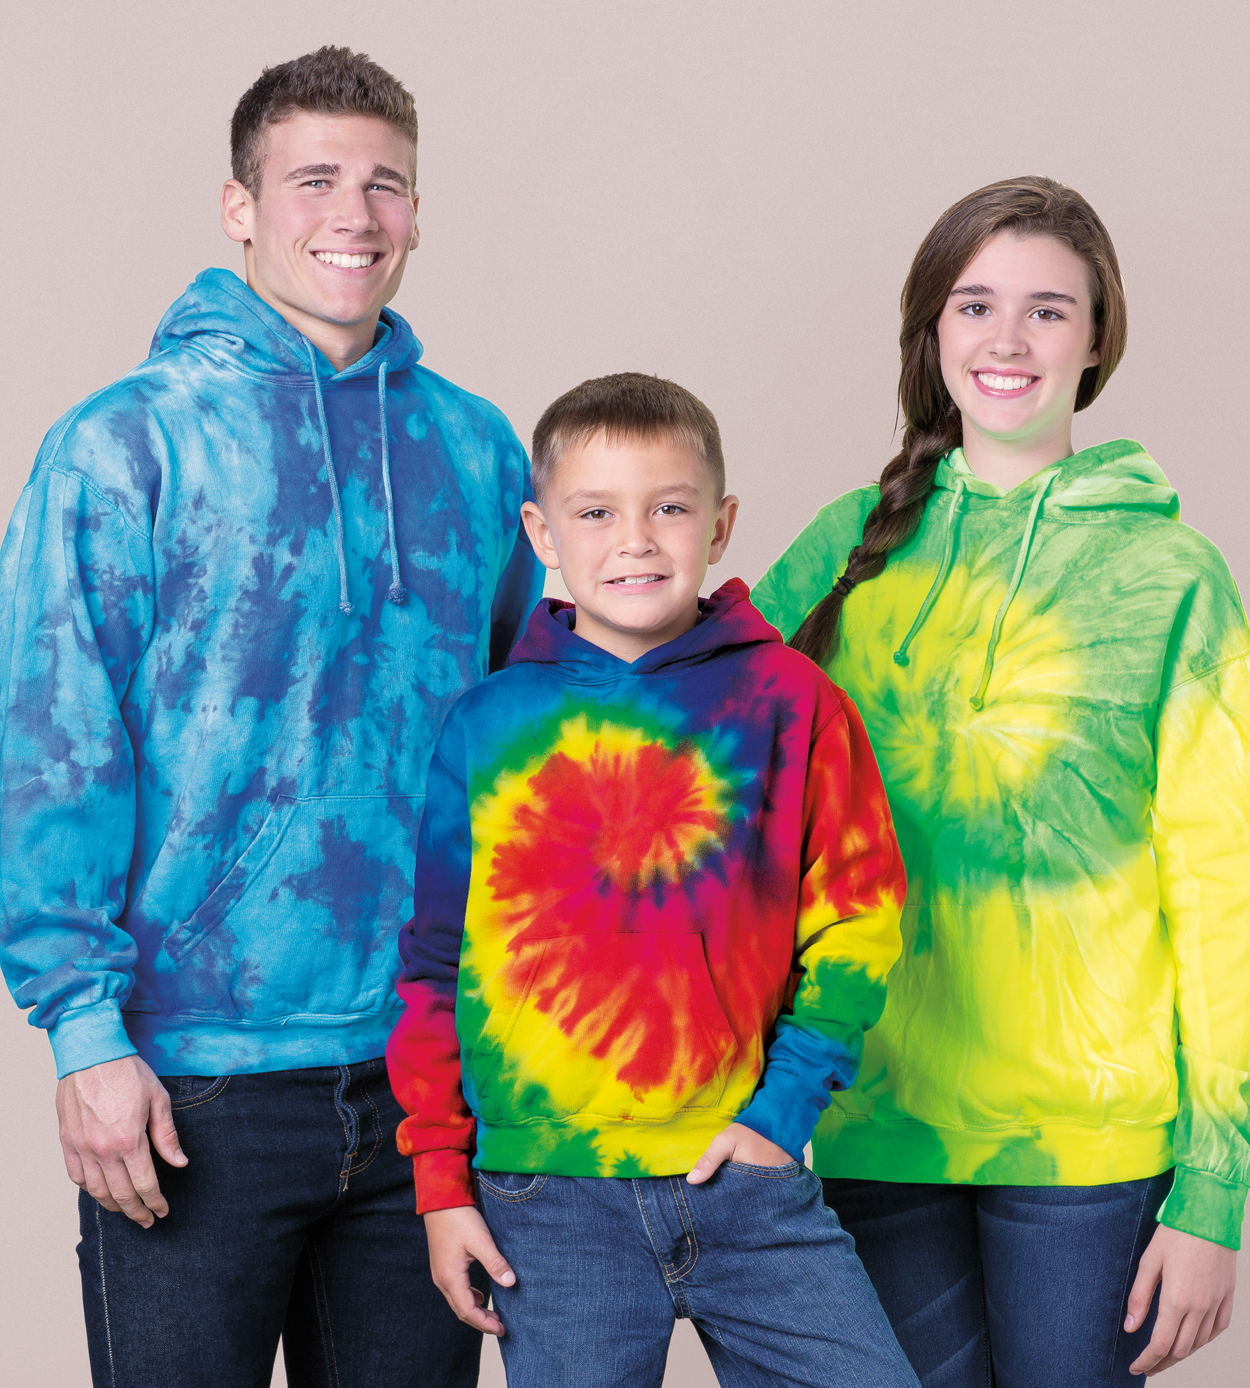 Colortone T8778 - Multi Color Tie Dye Hood